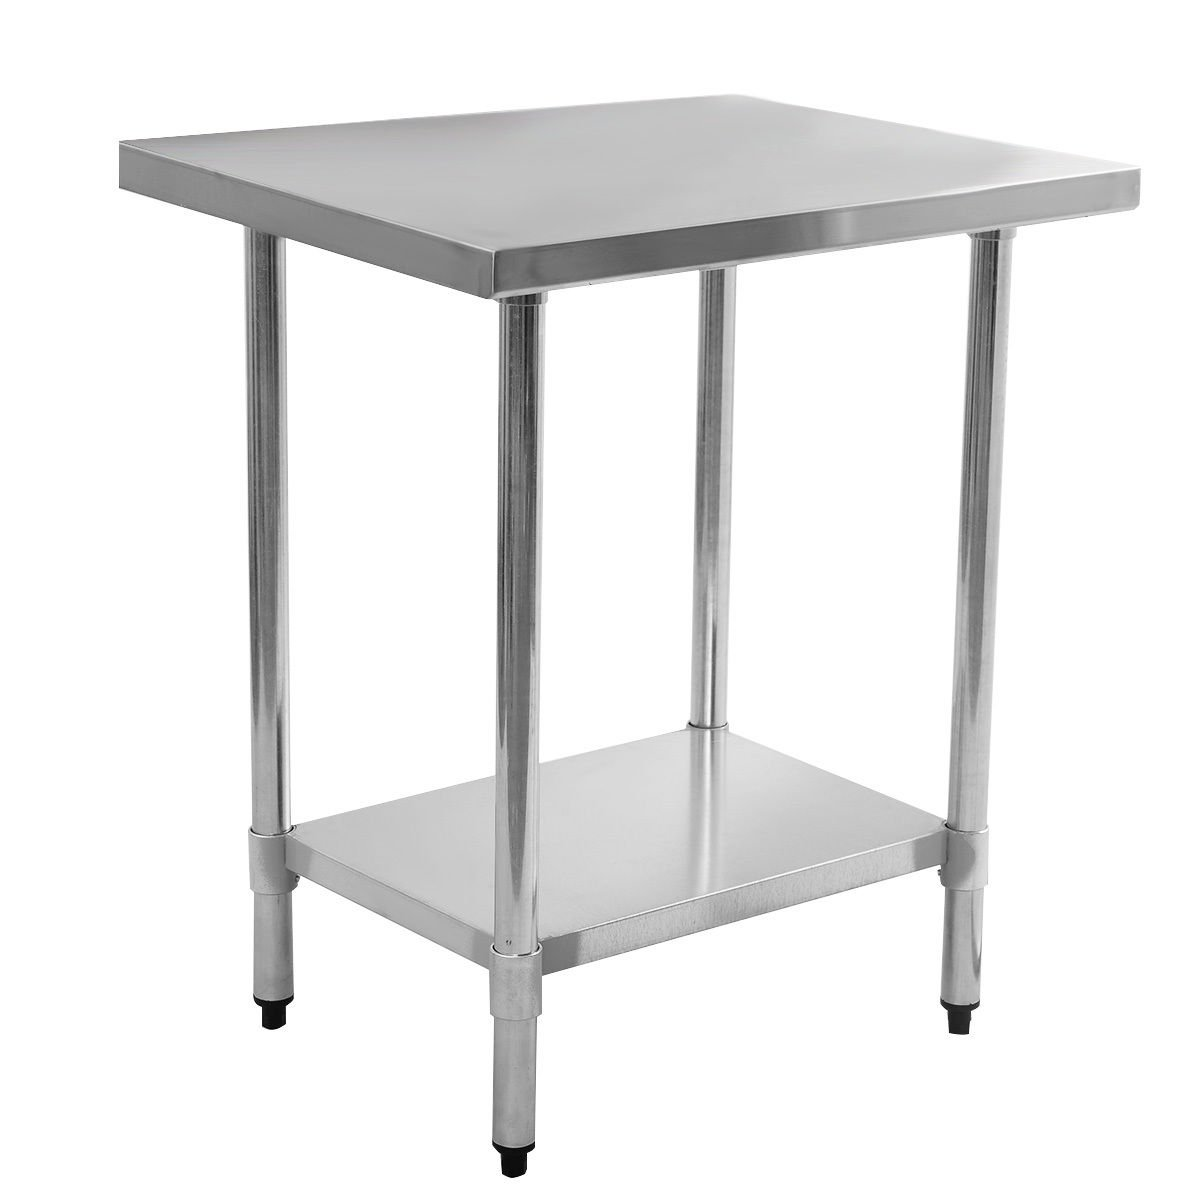 Giantex 24'' X 36'' Stainless Steel Commercial Kitchen Work Food Prep Table by Giantex